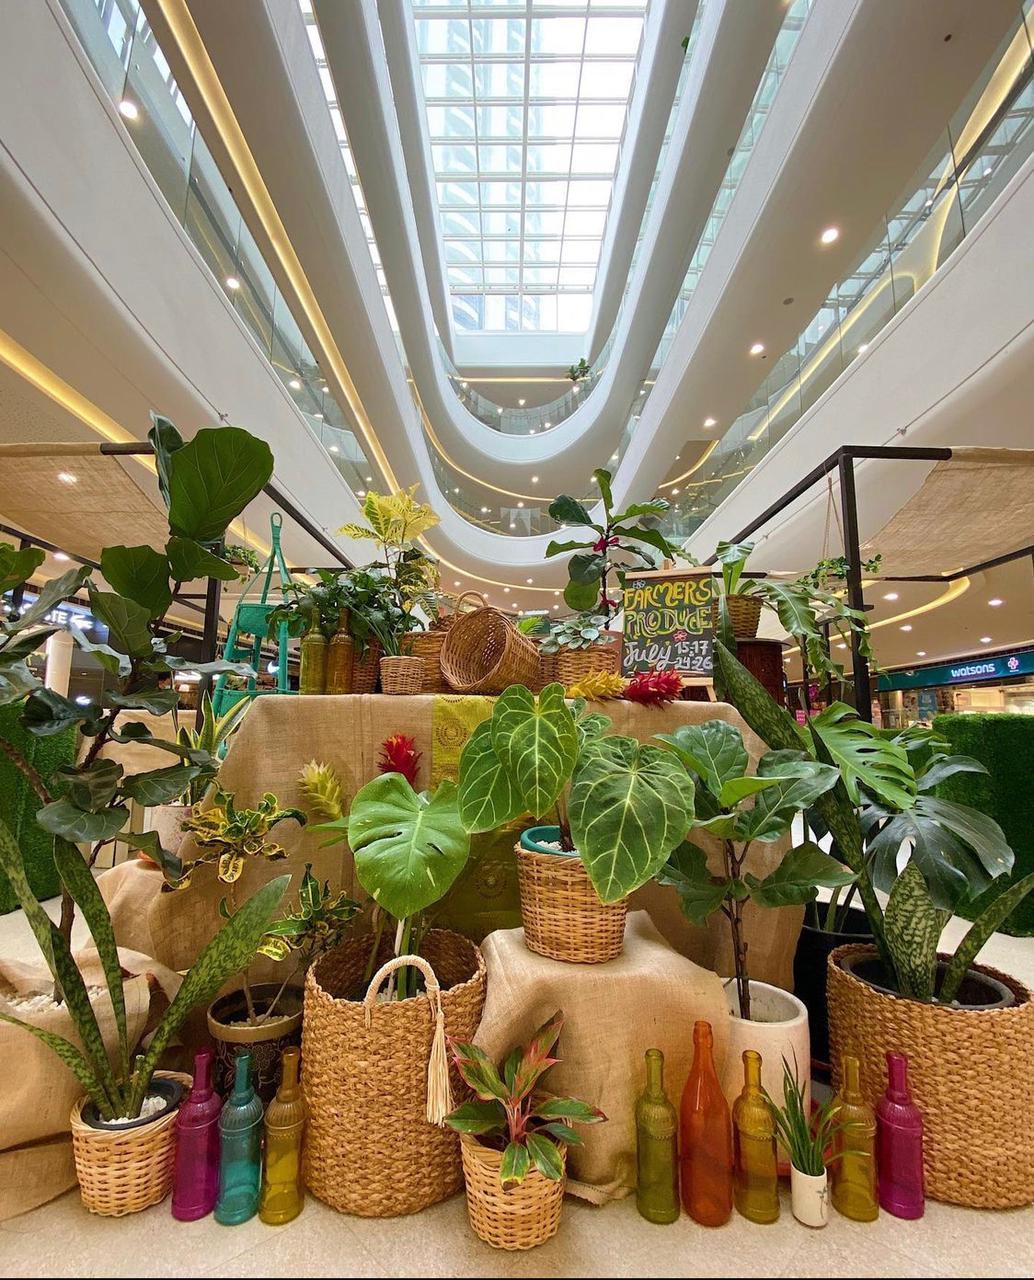 SM Supermalls brings back Farmers Produce with seasonal and organic products from June 3rd to July 25th